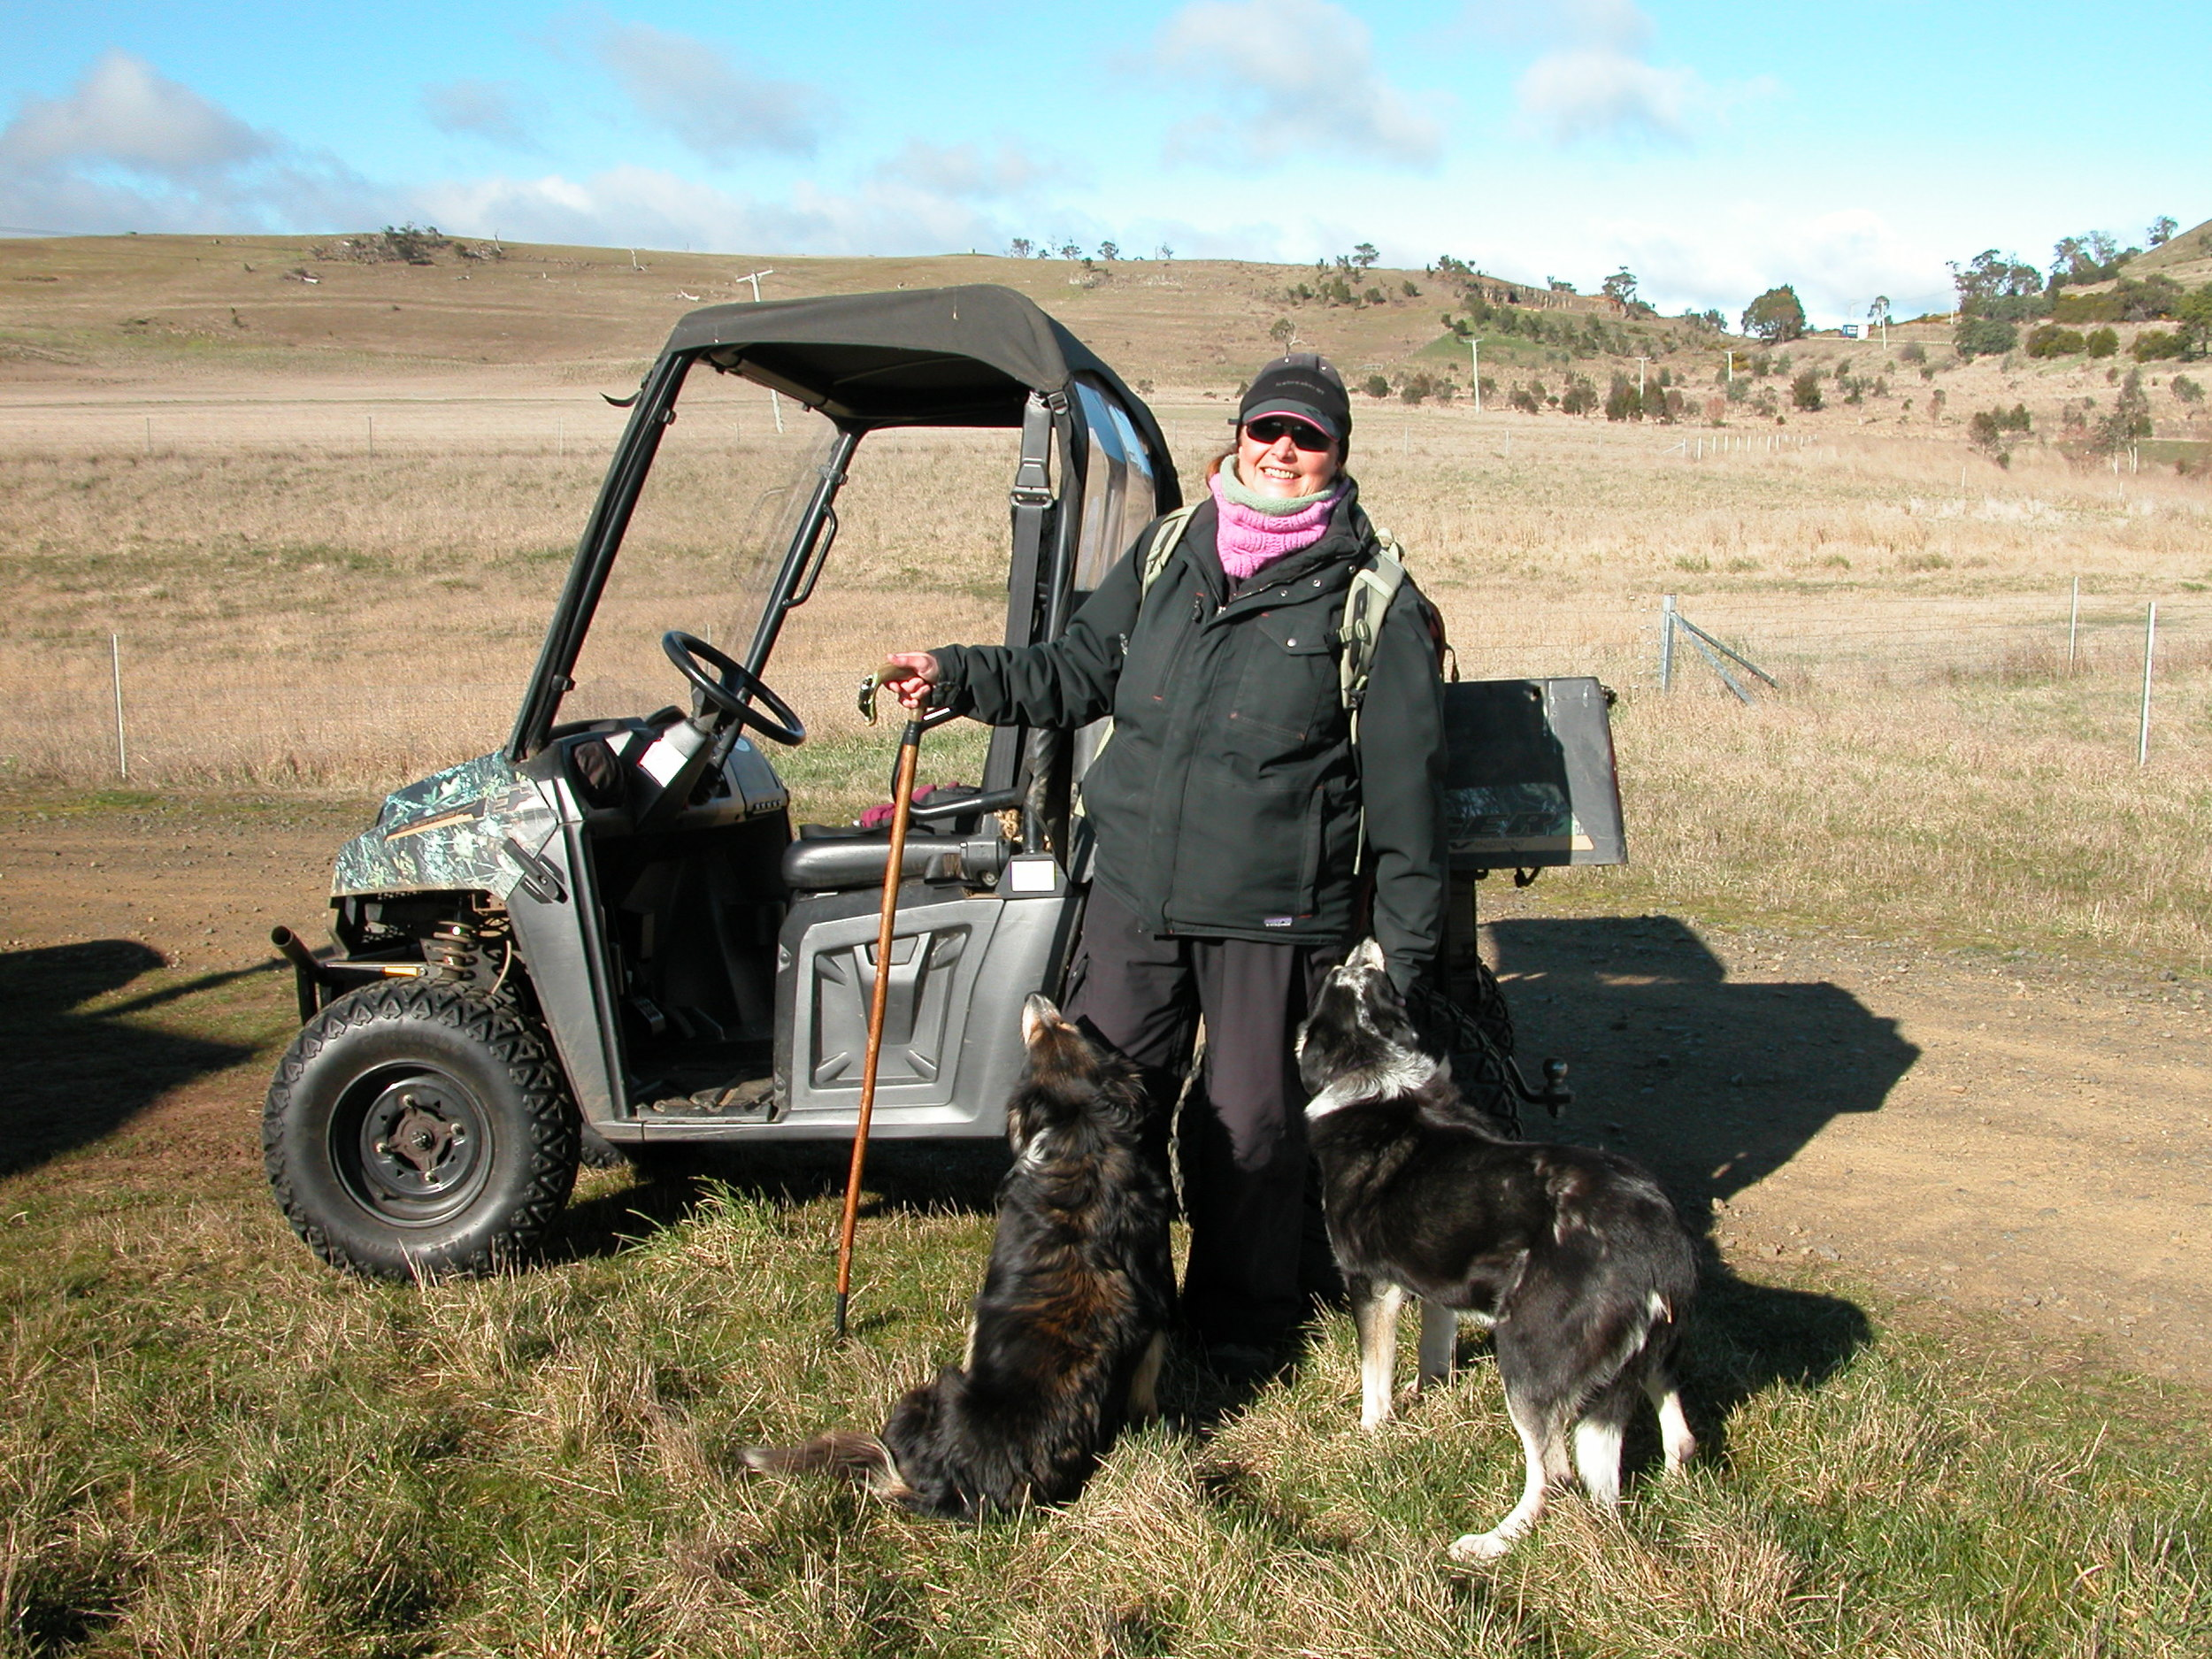 Janie, Chance and me, getting ready to go shepherding last winter. The only difference now is that I don't use the Polaris, and I've given up carrying the crook. A year of hiking up and down my hills has improved my balance, and the crook isn't big enough for me to catch a full-sized ewe anyway. If I have to catch one, now I just run them into one of my two sets of yards.